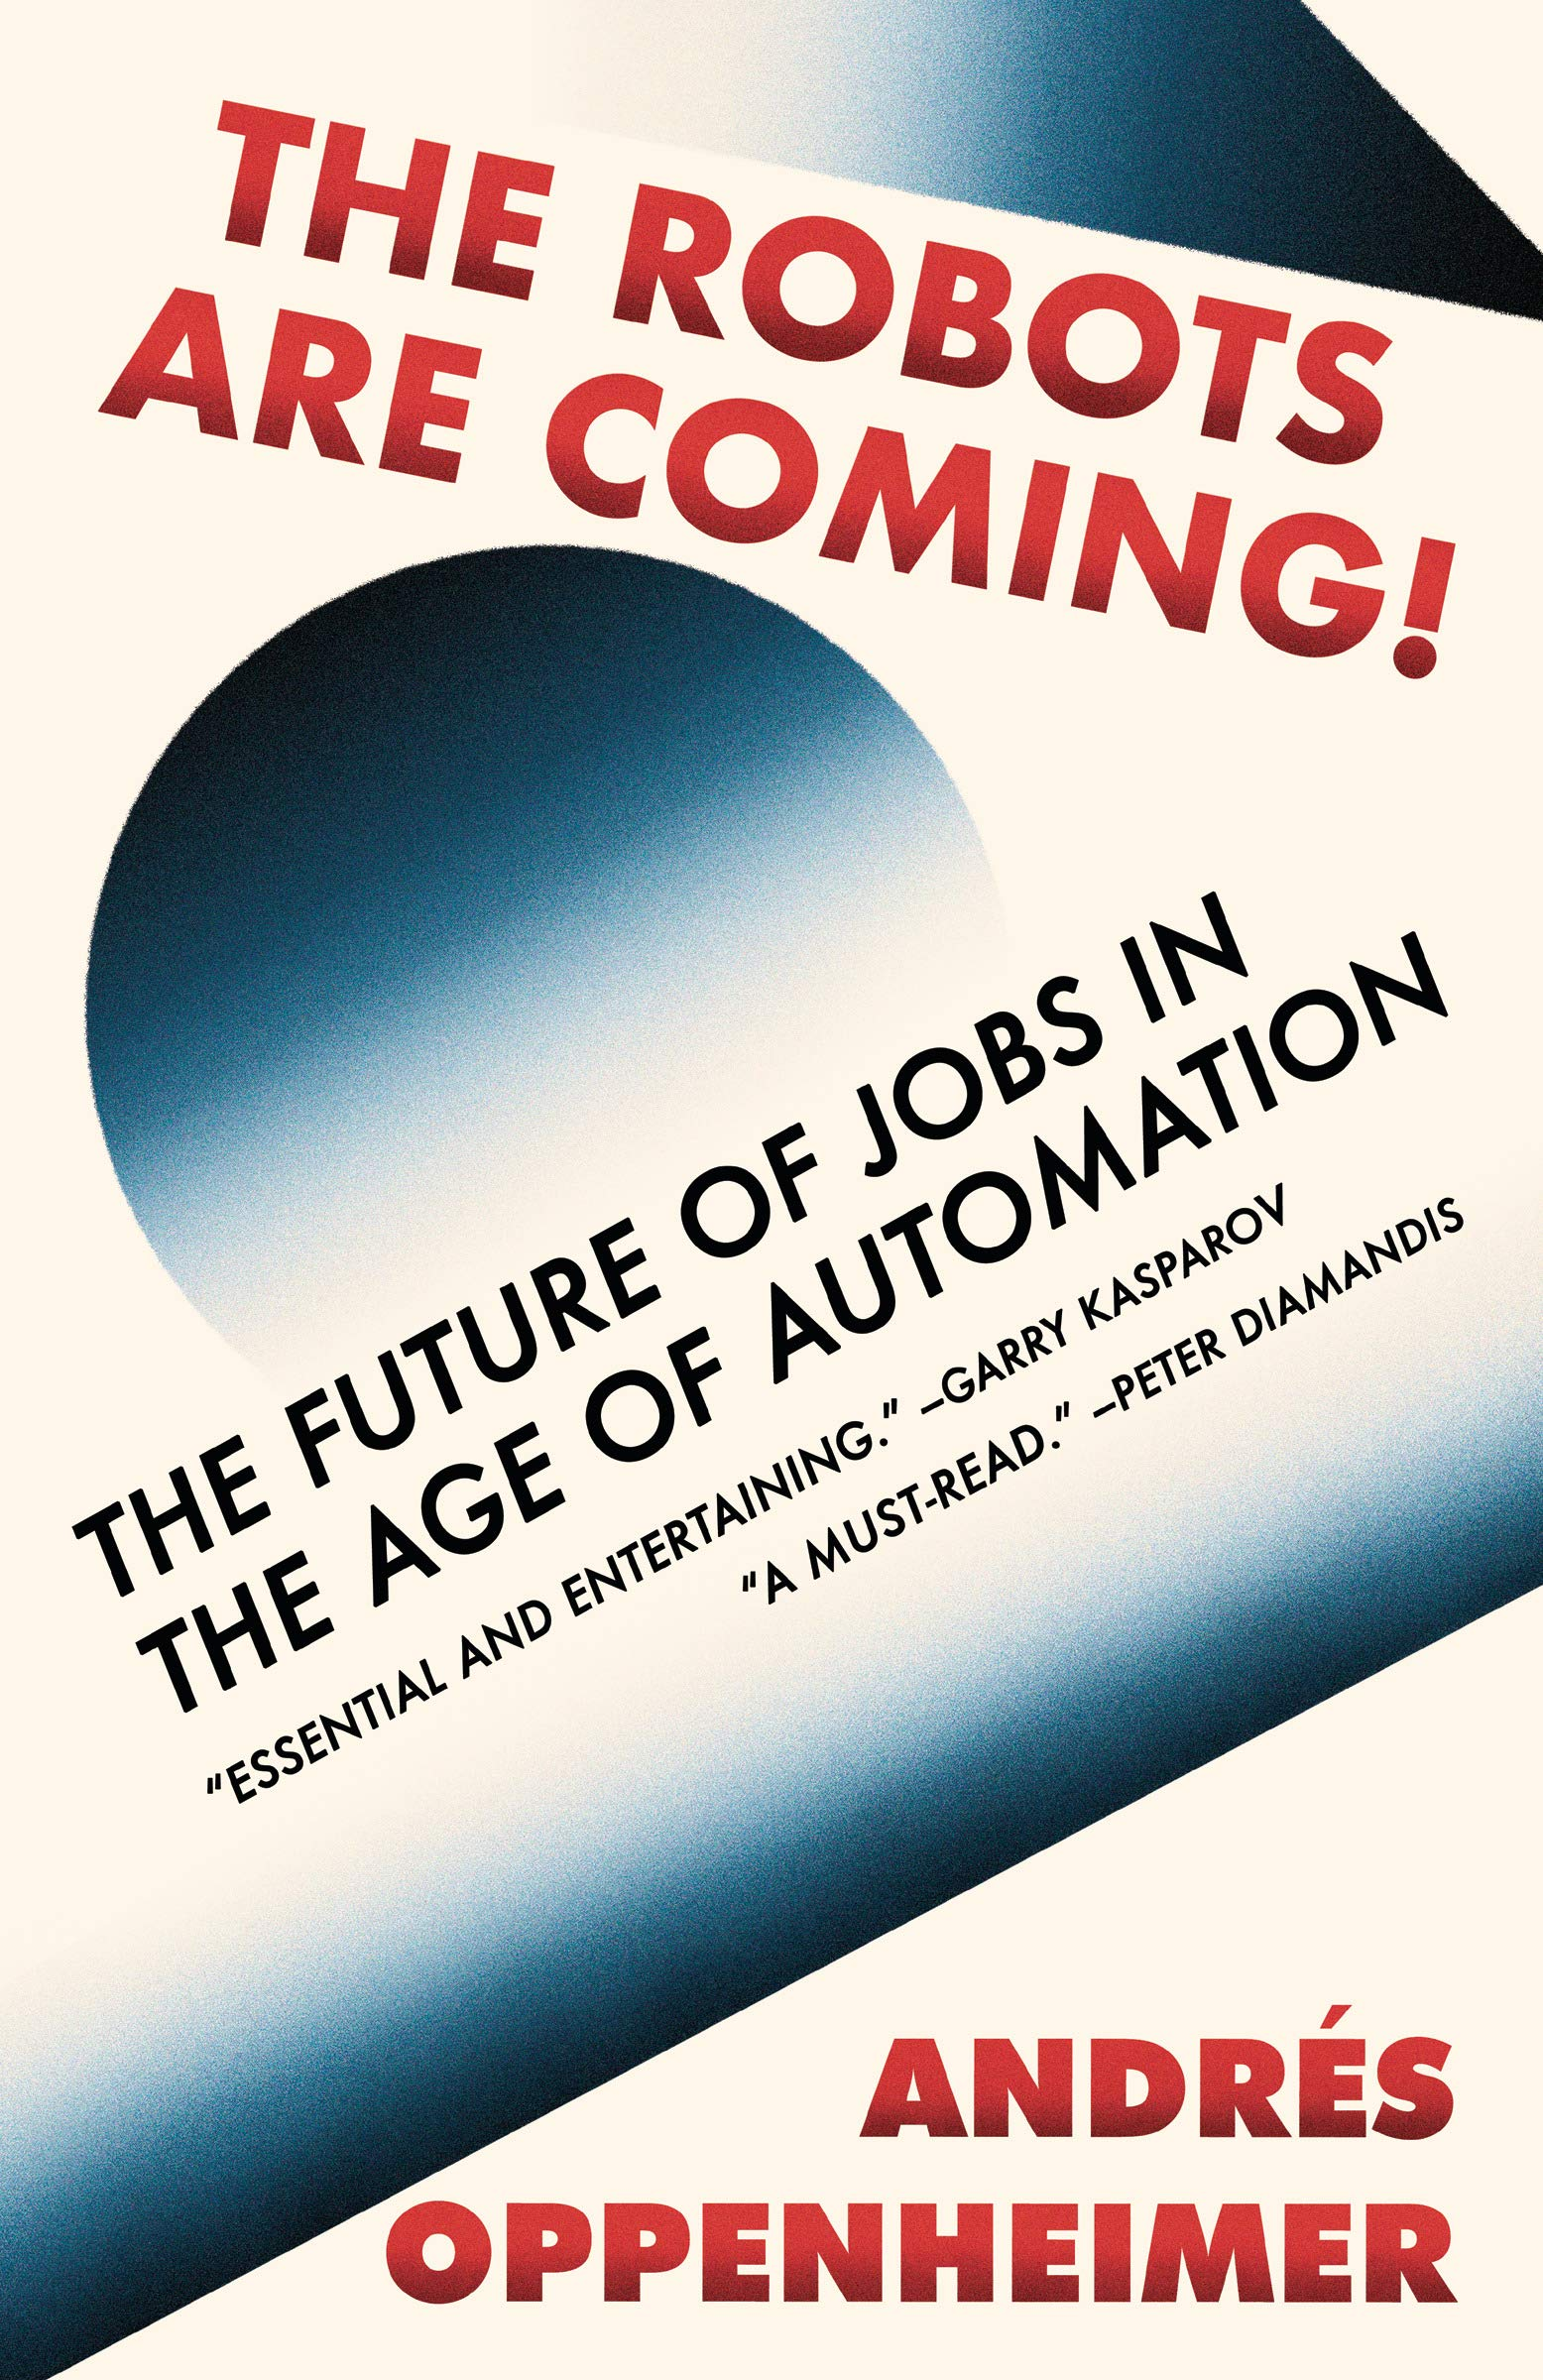 Download The Robots Are Coming!: The Future Of Jobs In The Age Of Automation 